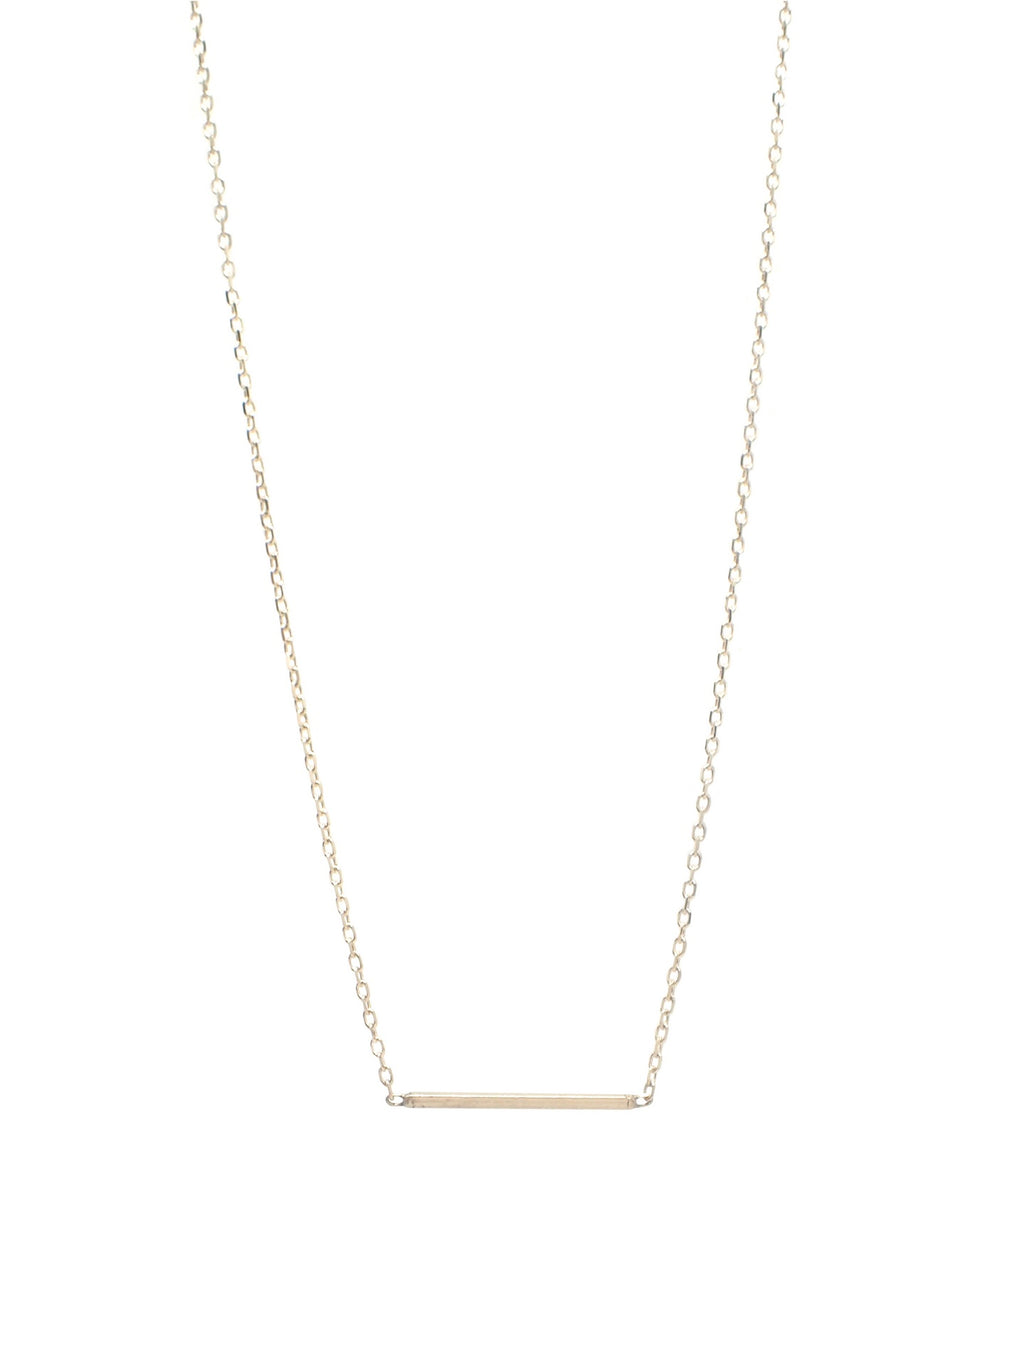 Rubik Necklace / 14Kt Yellow Gold